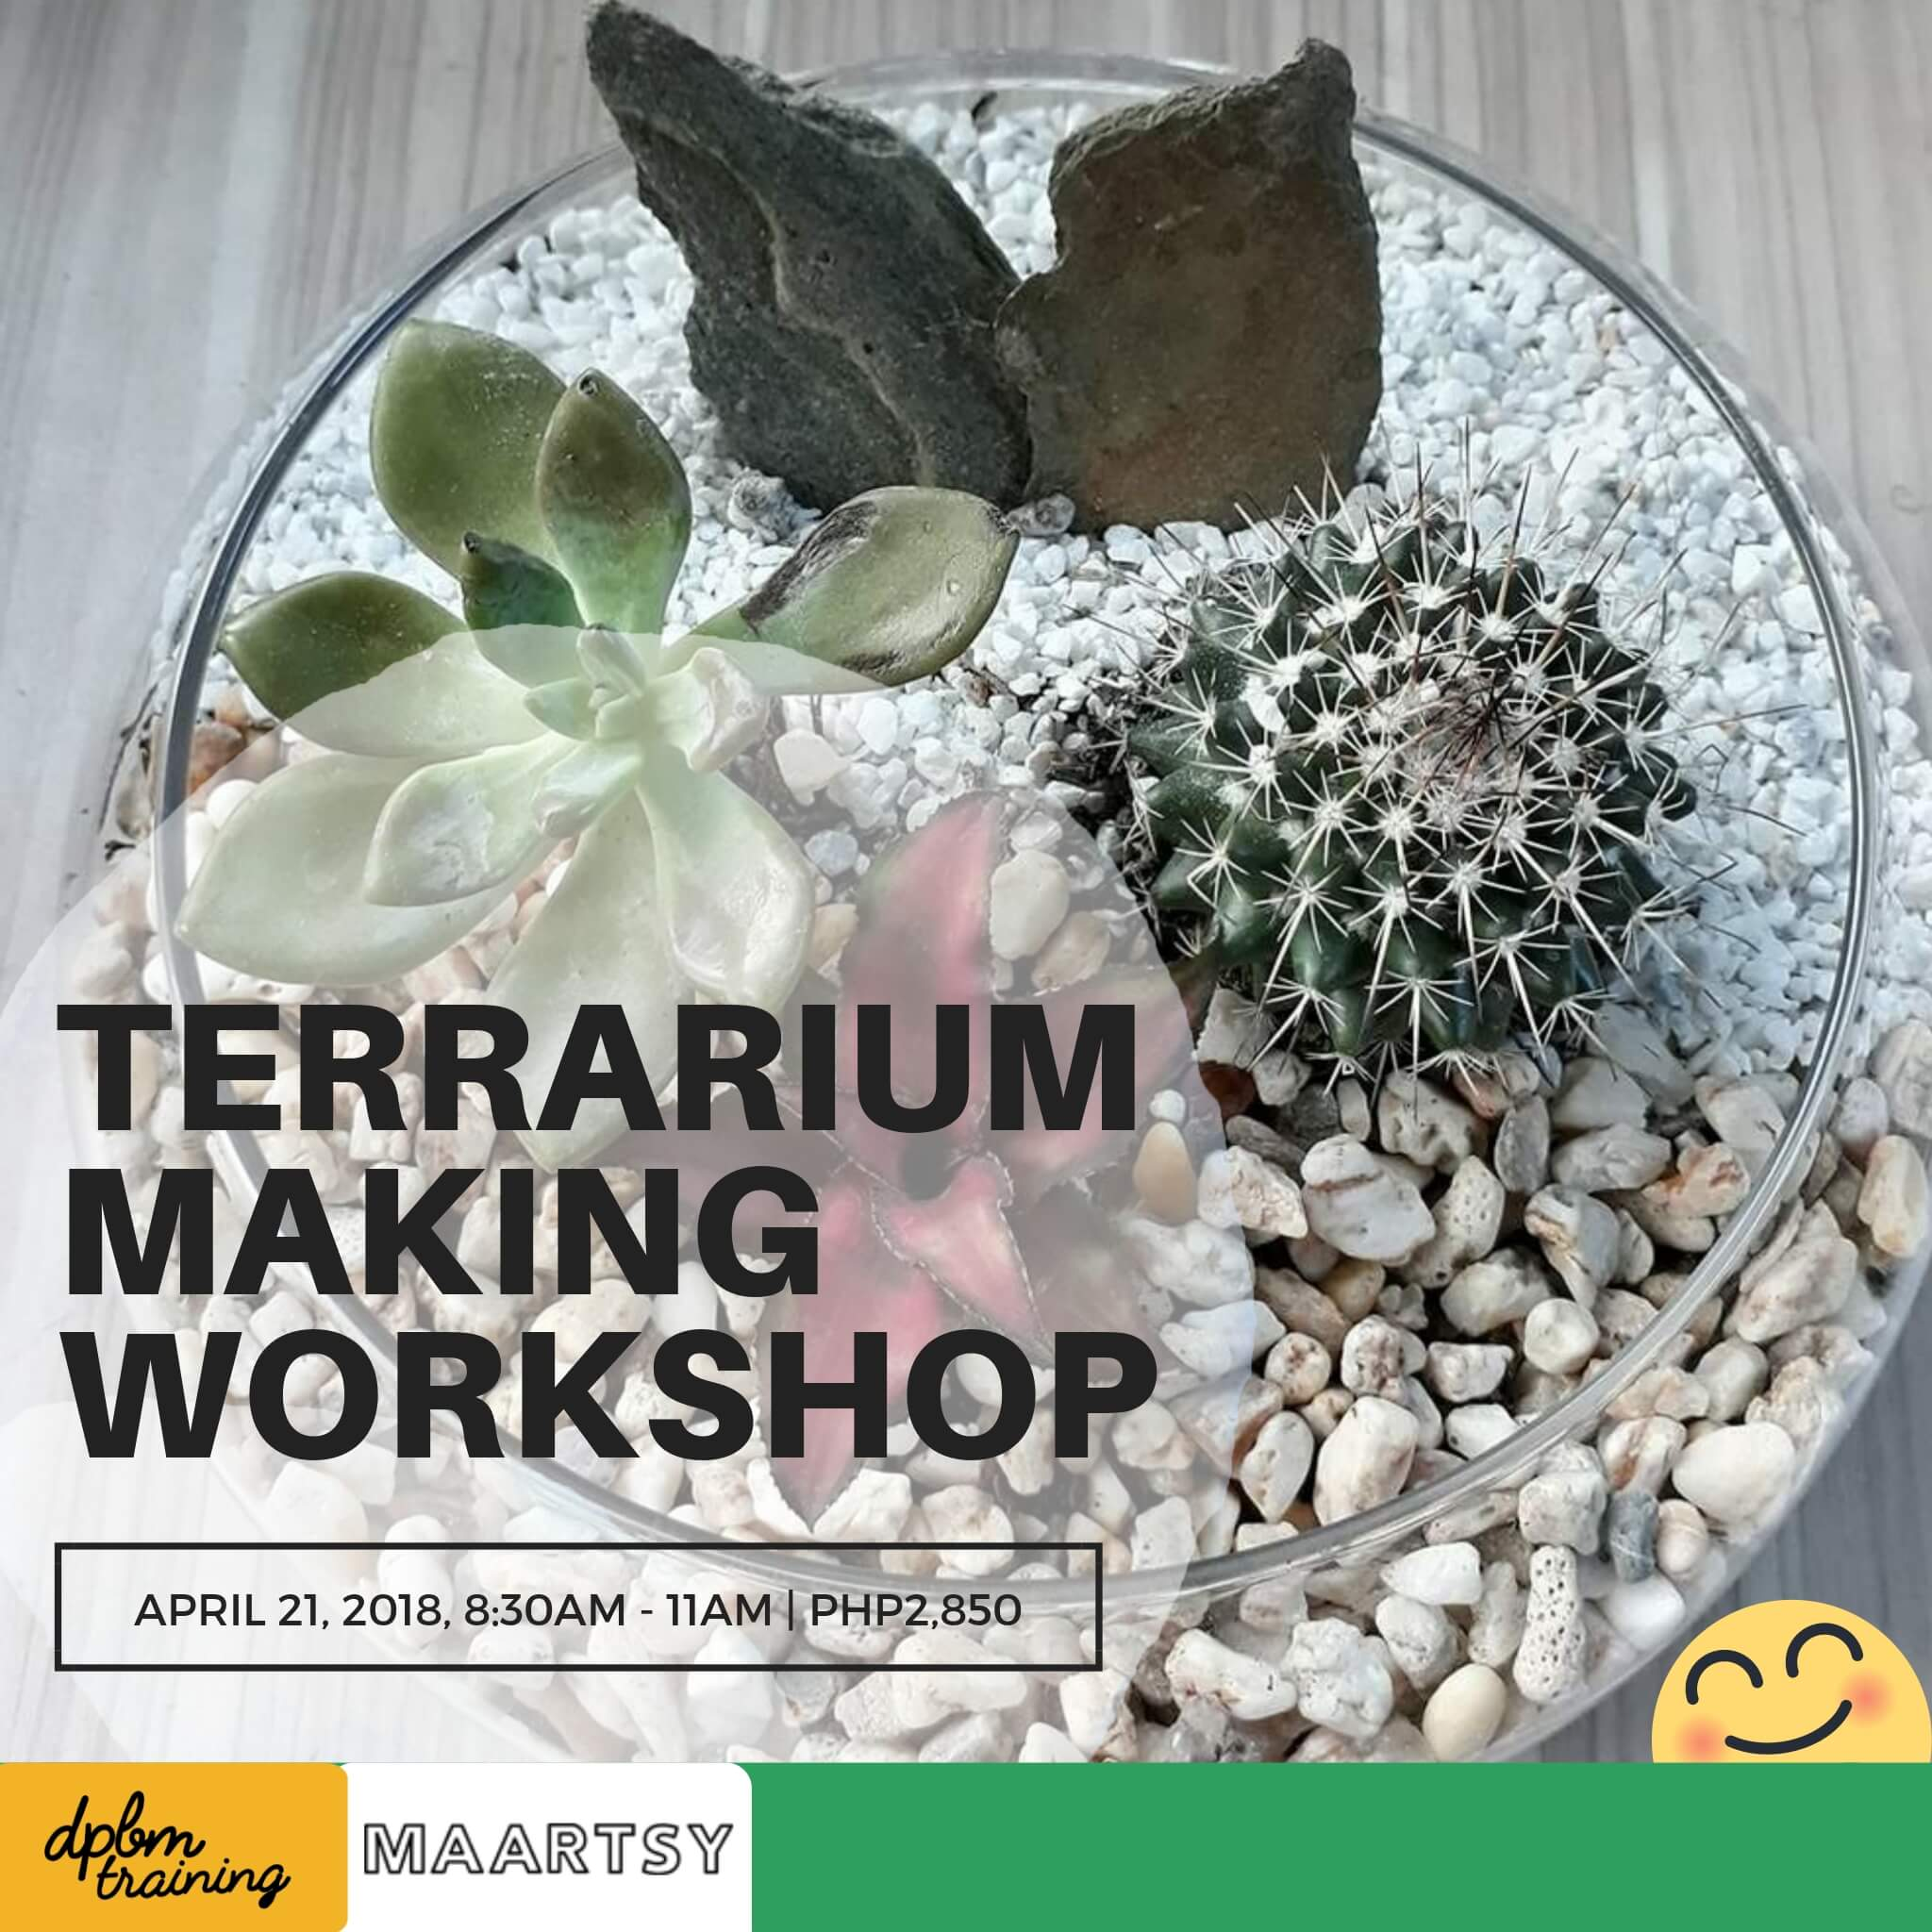 Terrarium Making Workshop Maartsy Com